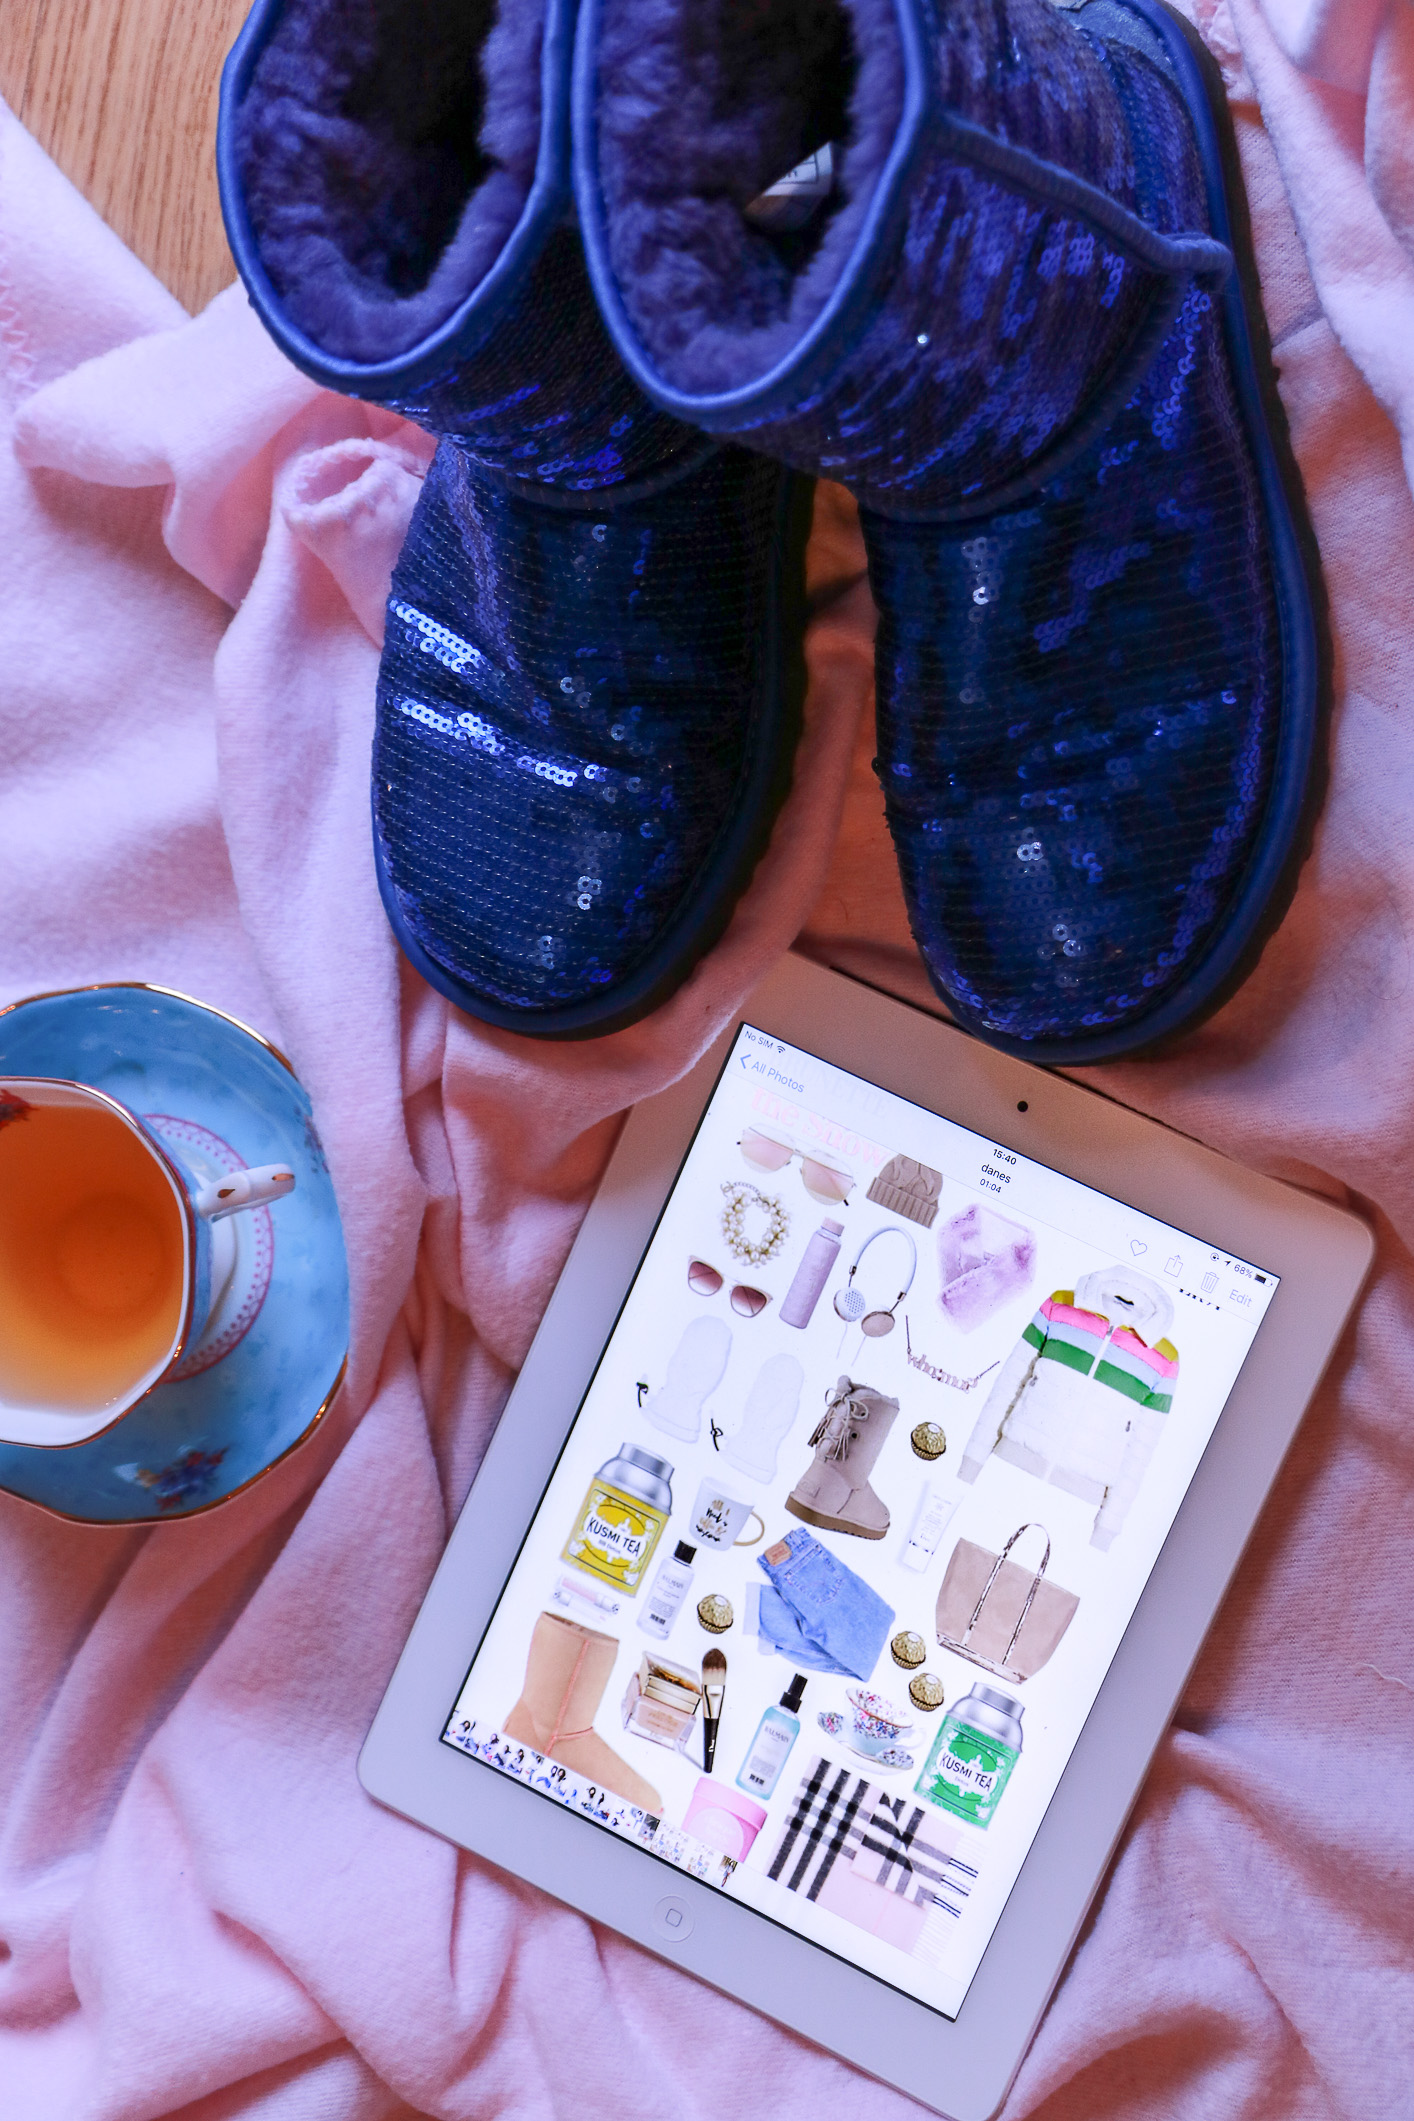 Fashion blogger Veronika Lipar of Brunette From Wall Street sharing winter essentials - all the things you need to get through this winter feeling warm and stylish as the fashion blogger